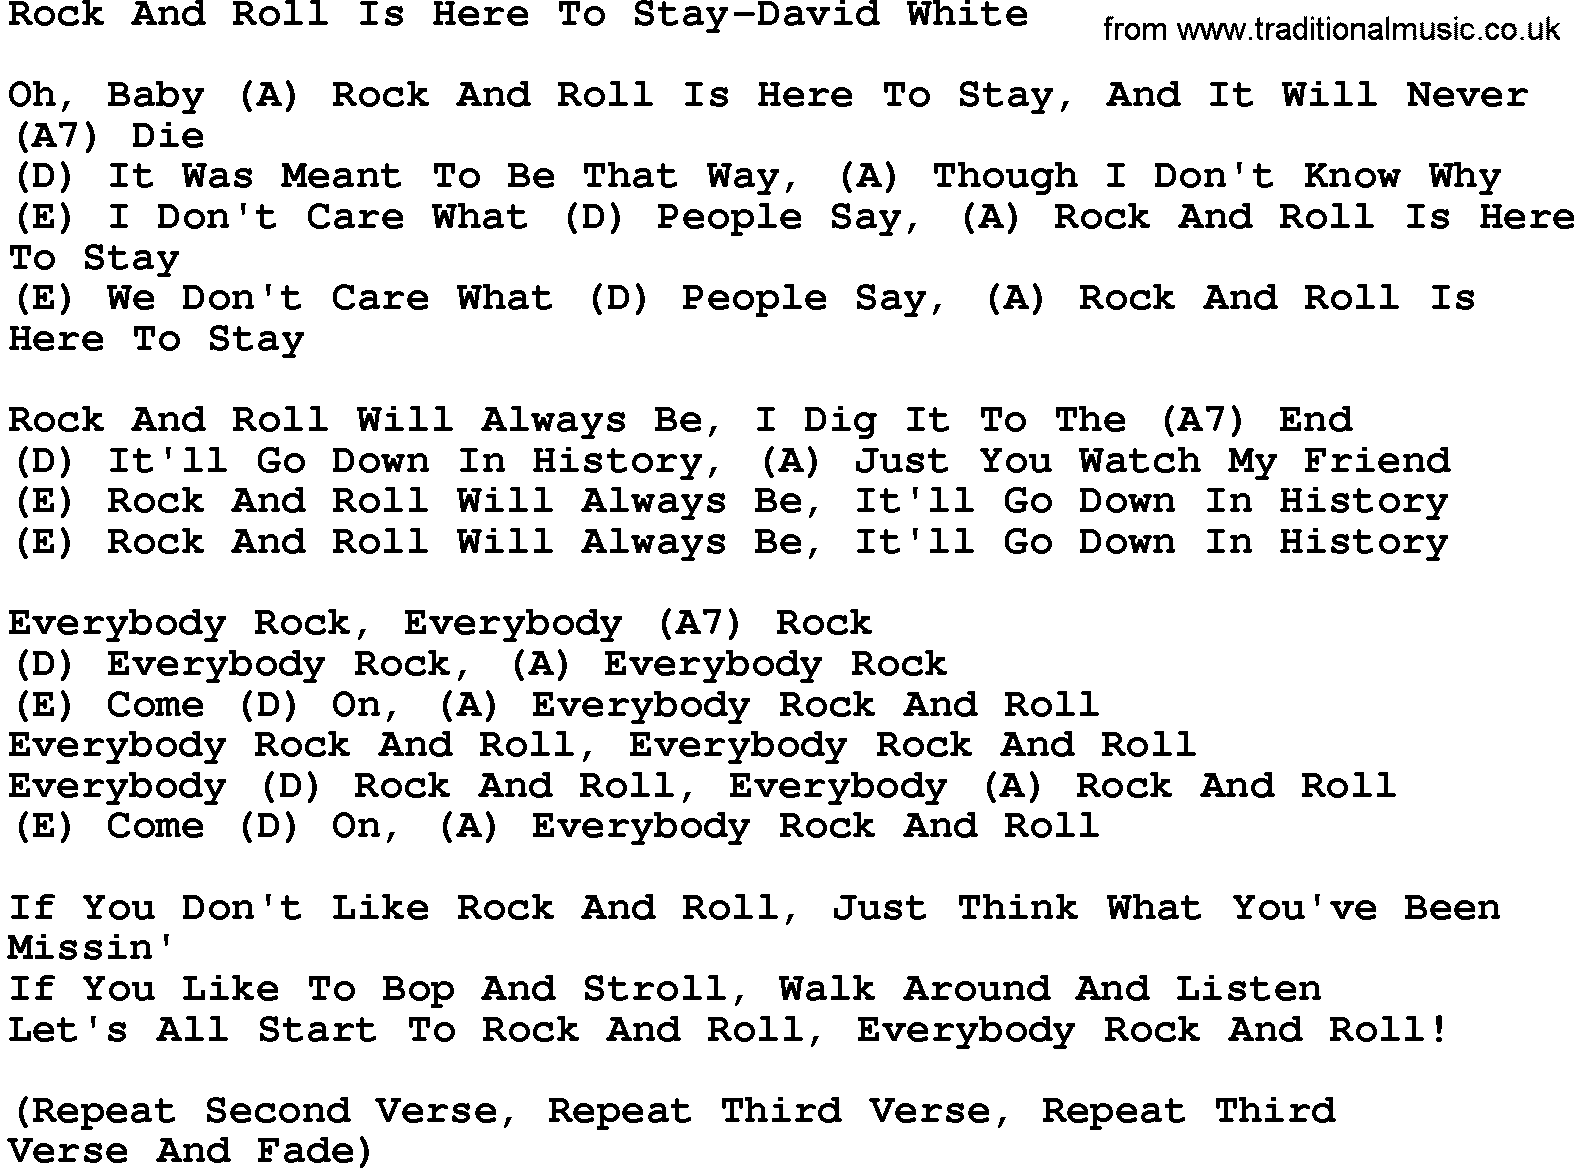 Time Song Lyrics With Chords For When The Roll Is: Country Music:Rock And Roll Is Here To Stay-David White